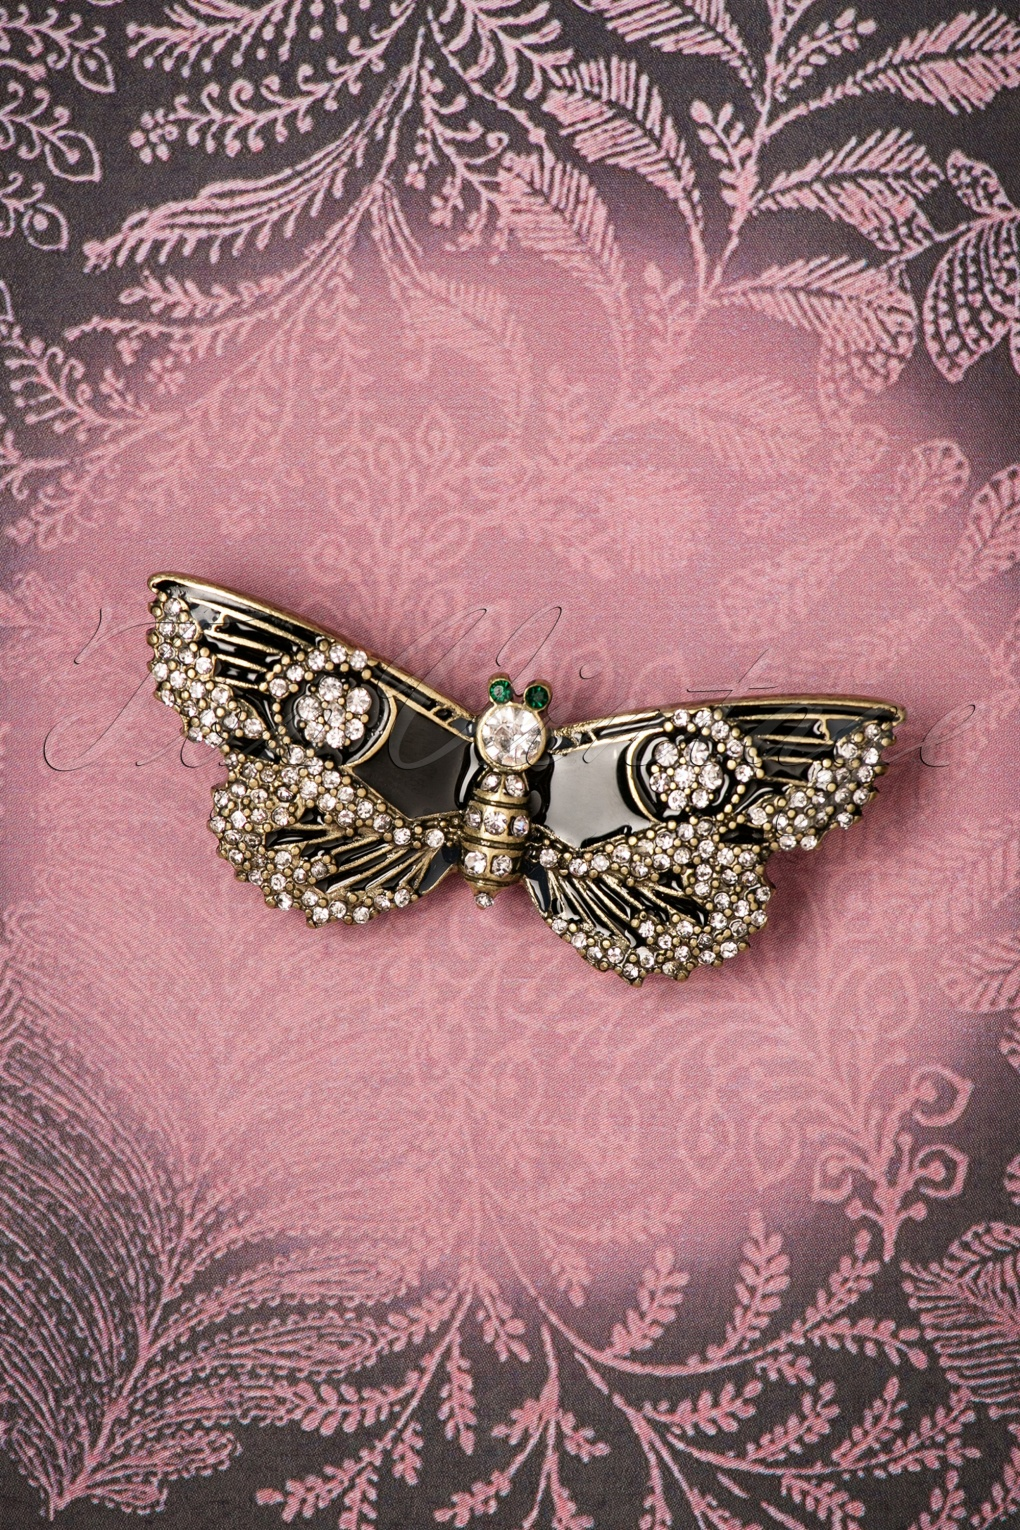 1930s Jewelry | Art Deco Style Jewelry 30s Jet Butterfly Brooch in Black and Gold £19.29 AT vintagedancer.com